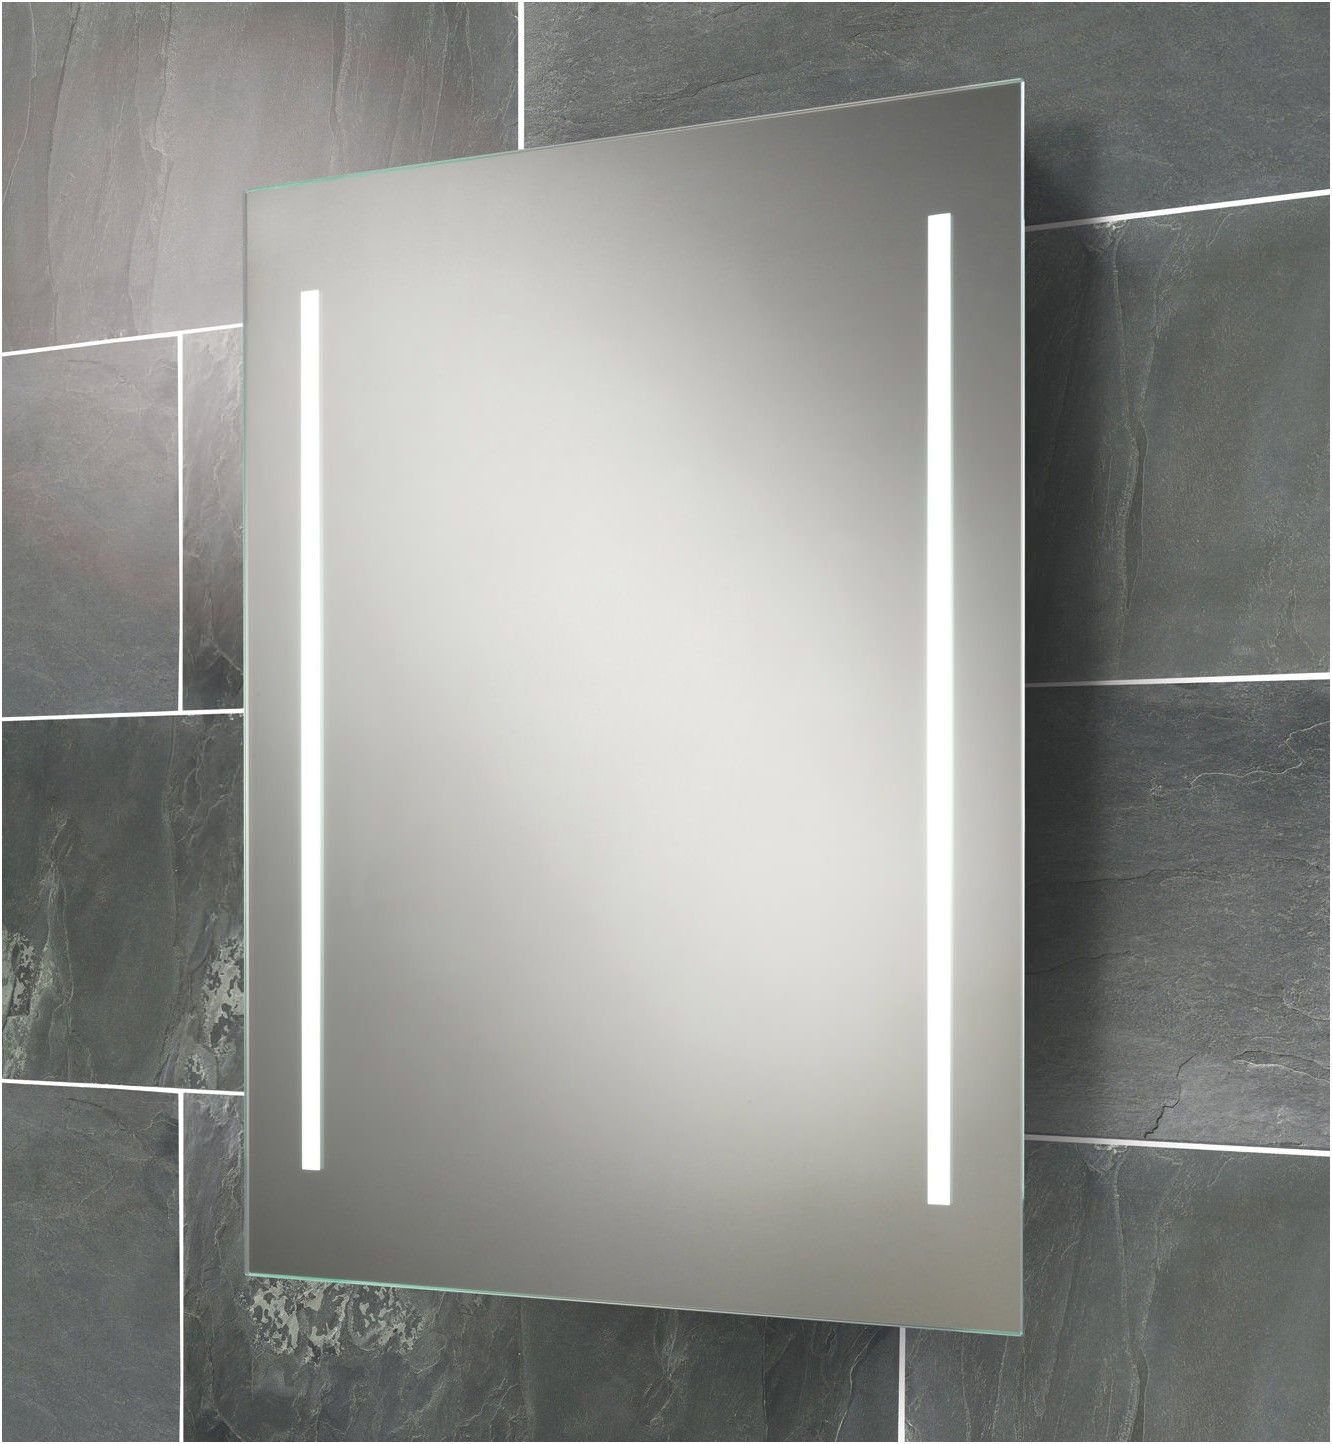 bathroom mirrors with lights battery operated 9designsemporium from ...